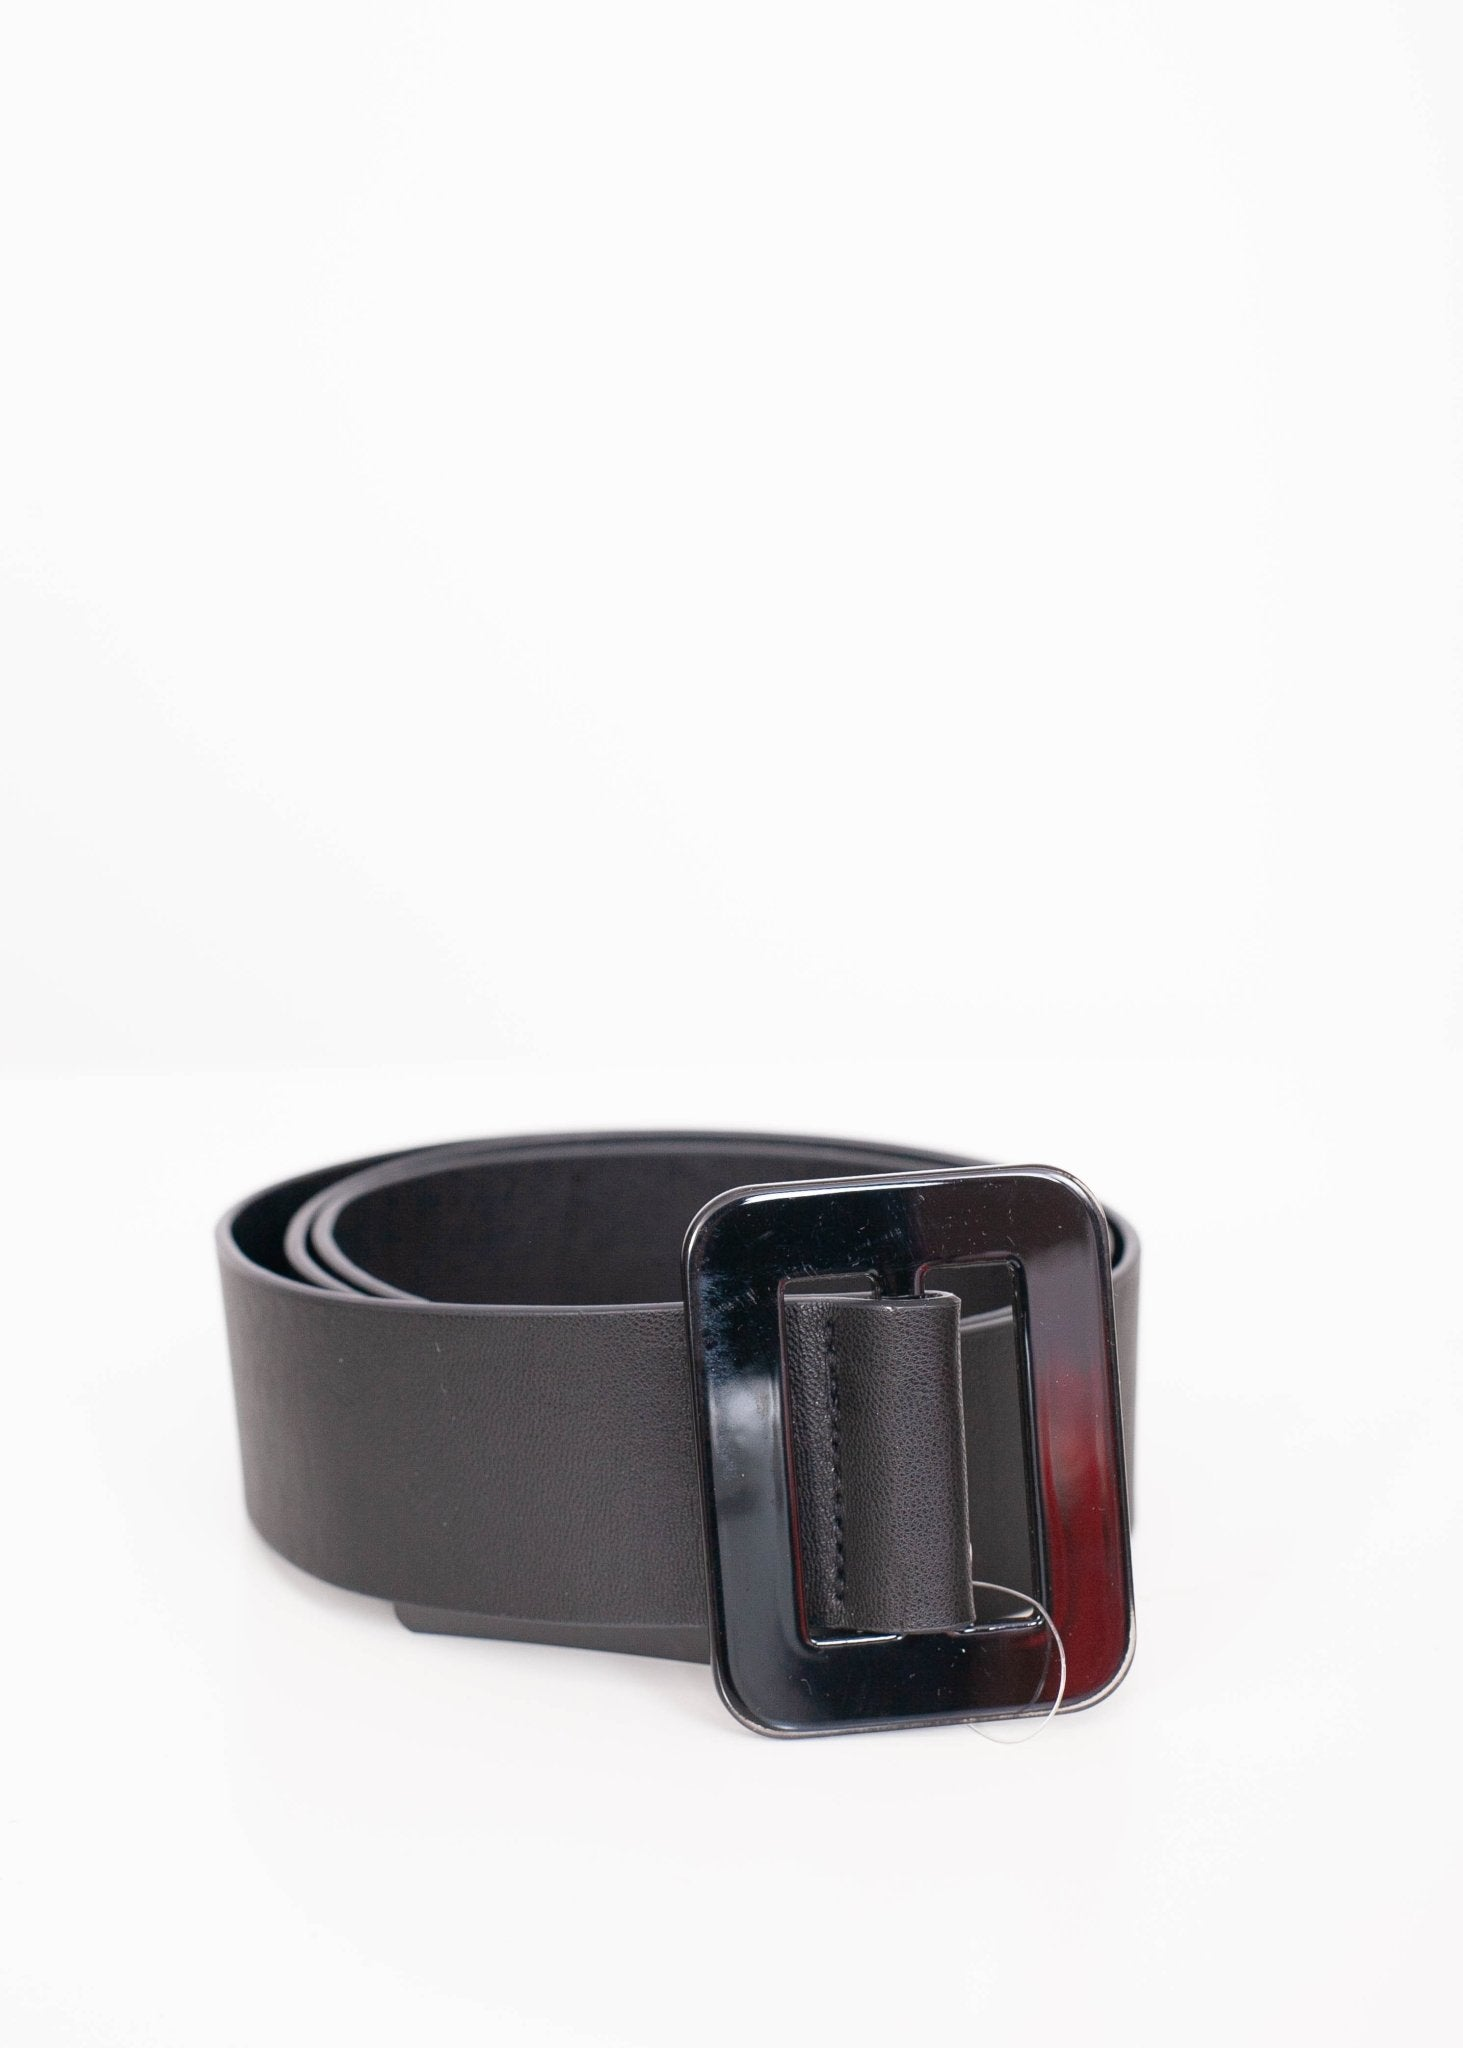 Emilia Black Big Buckle Belt - The Walk in Wardrobe